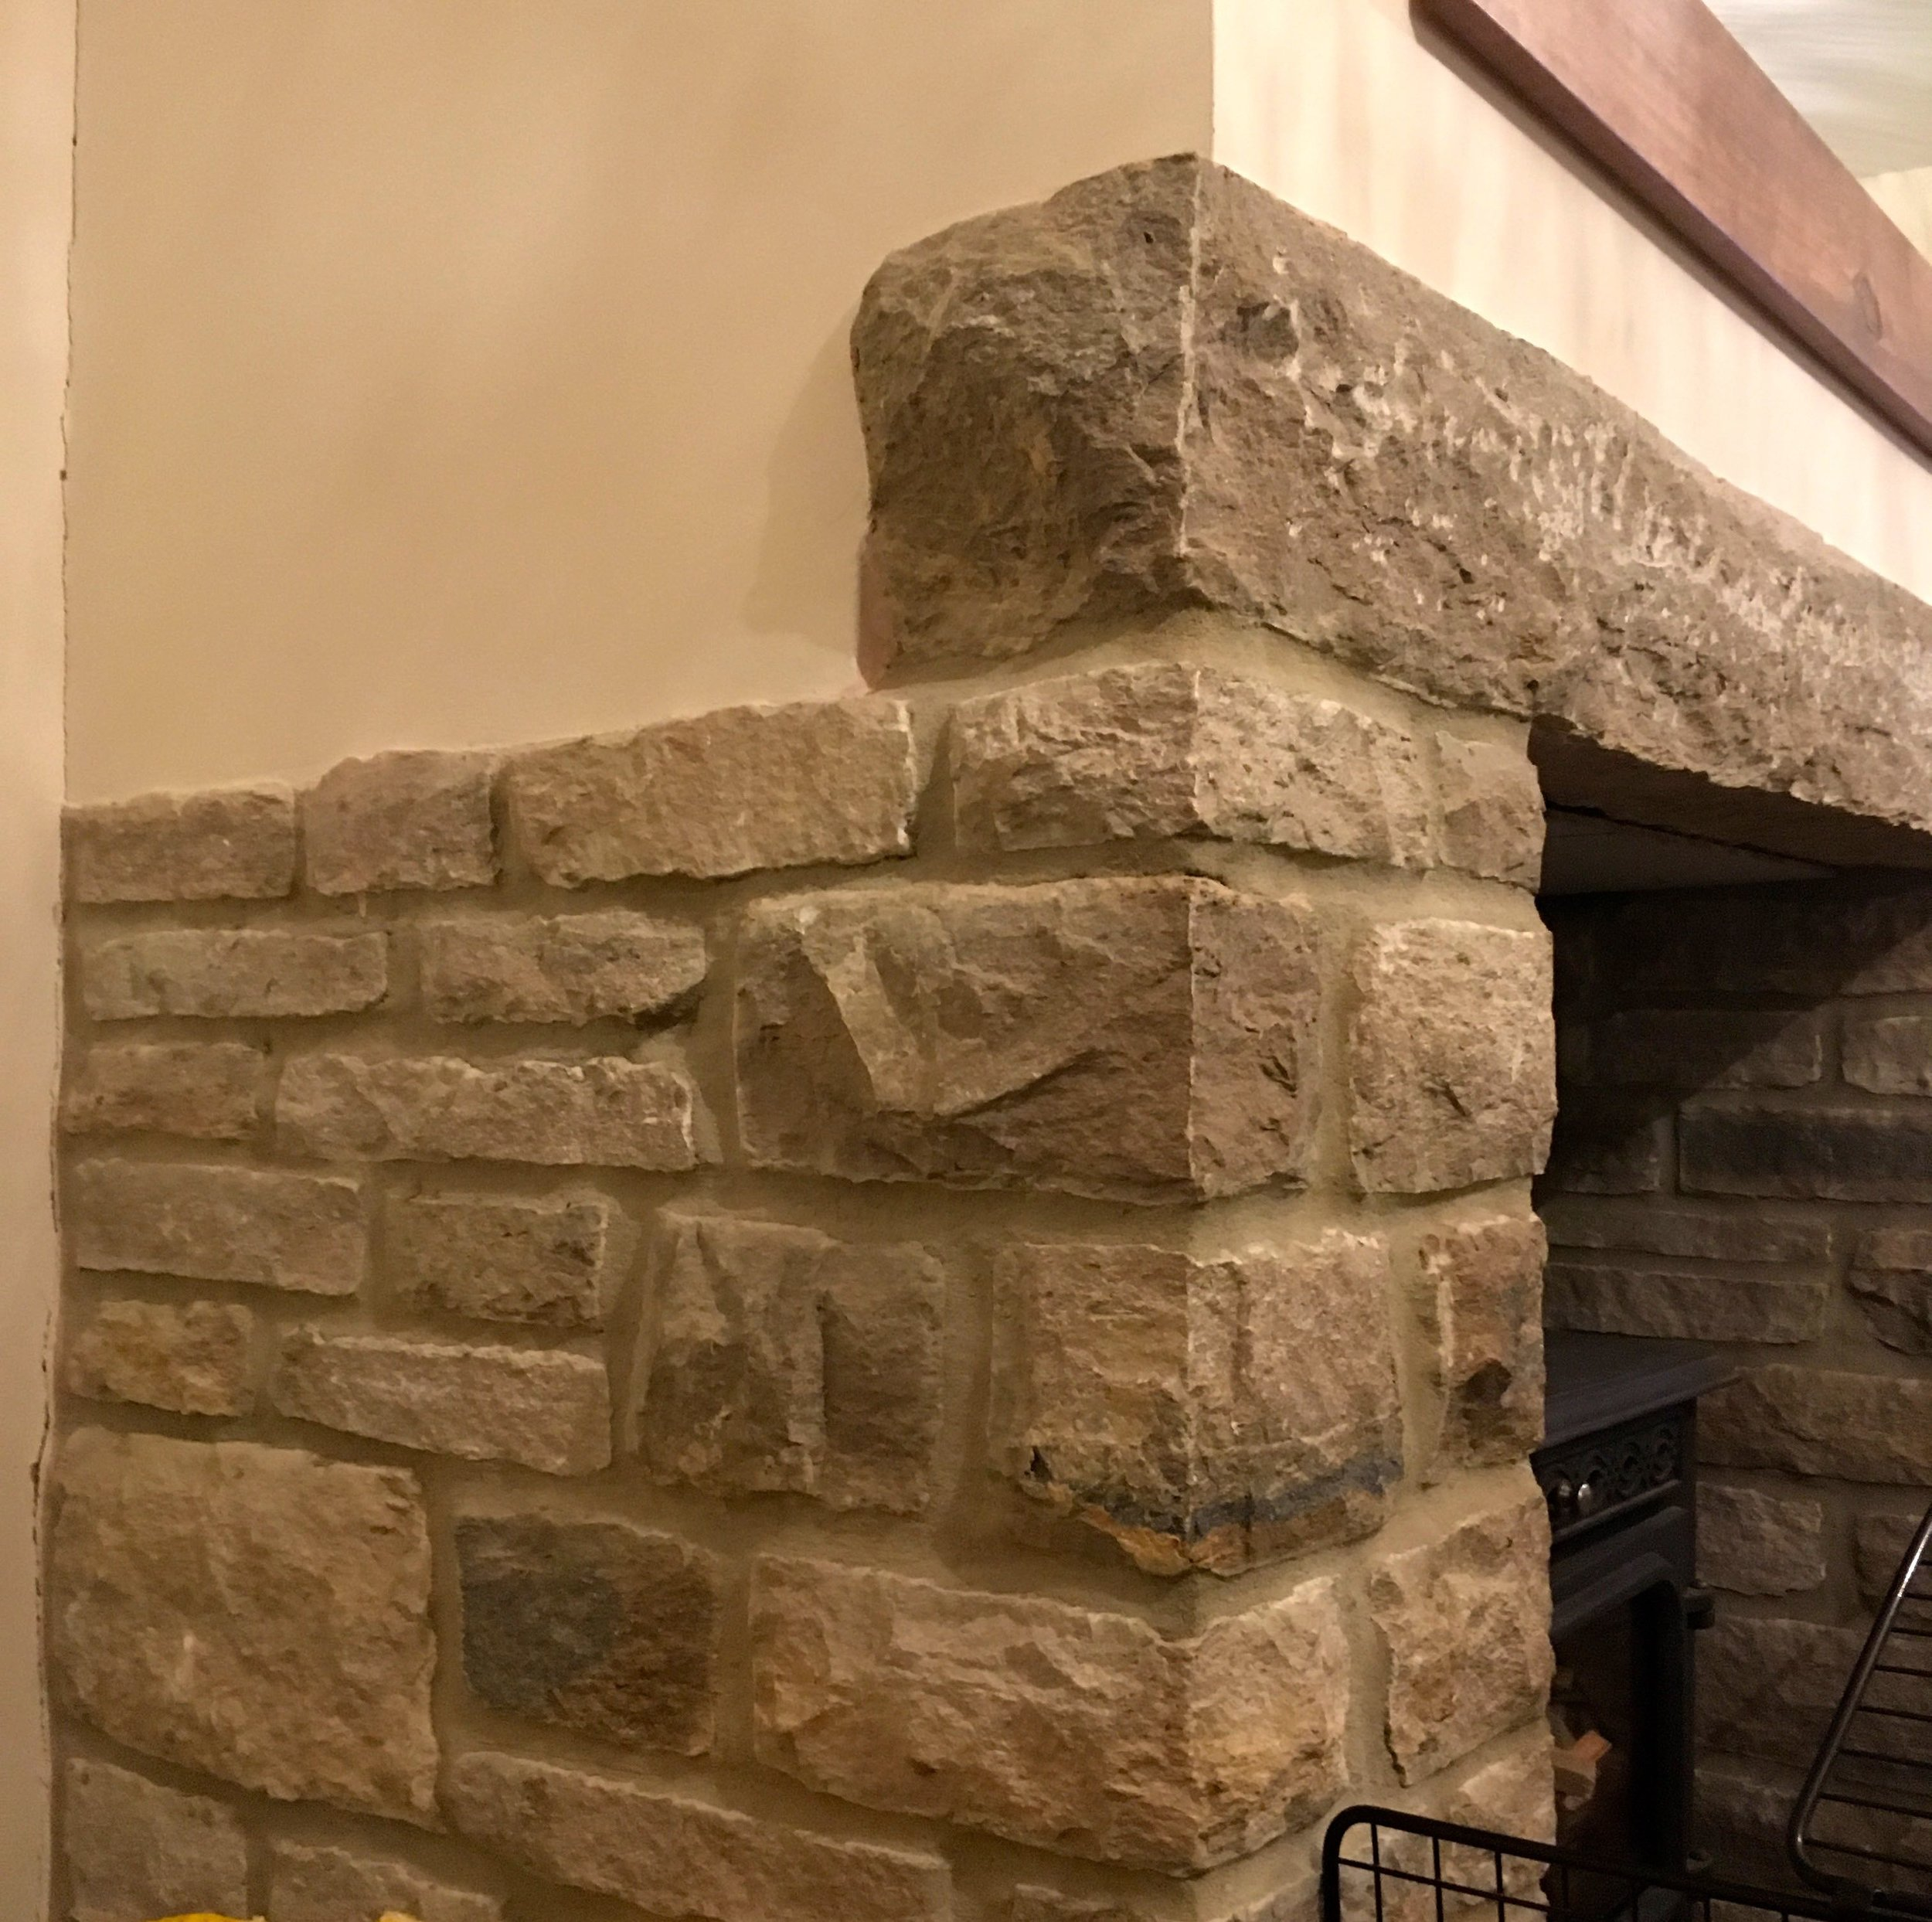 A close-up of the open fireplace